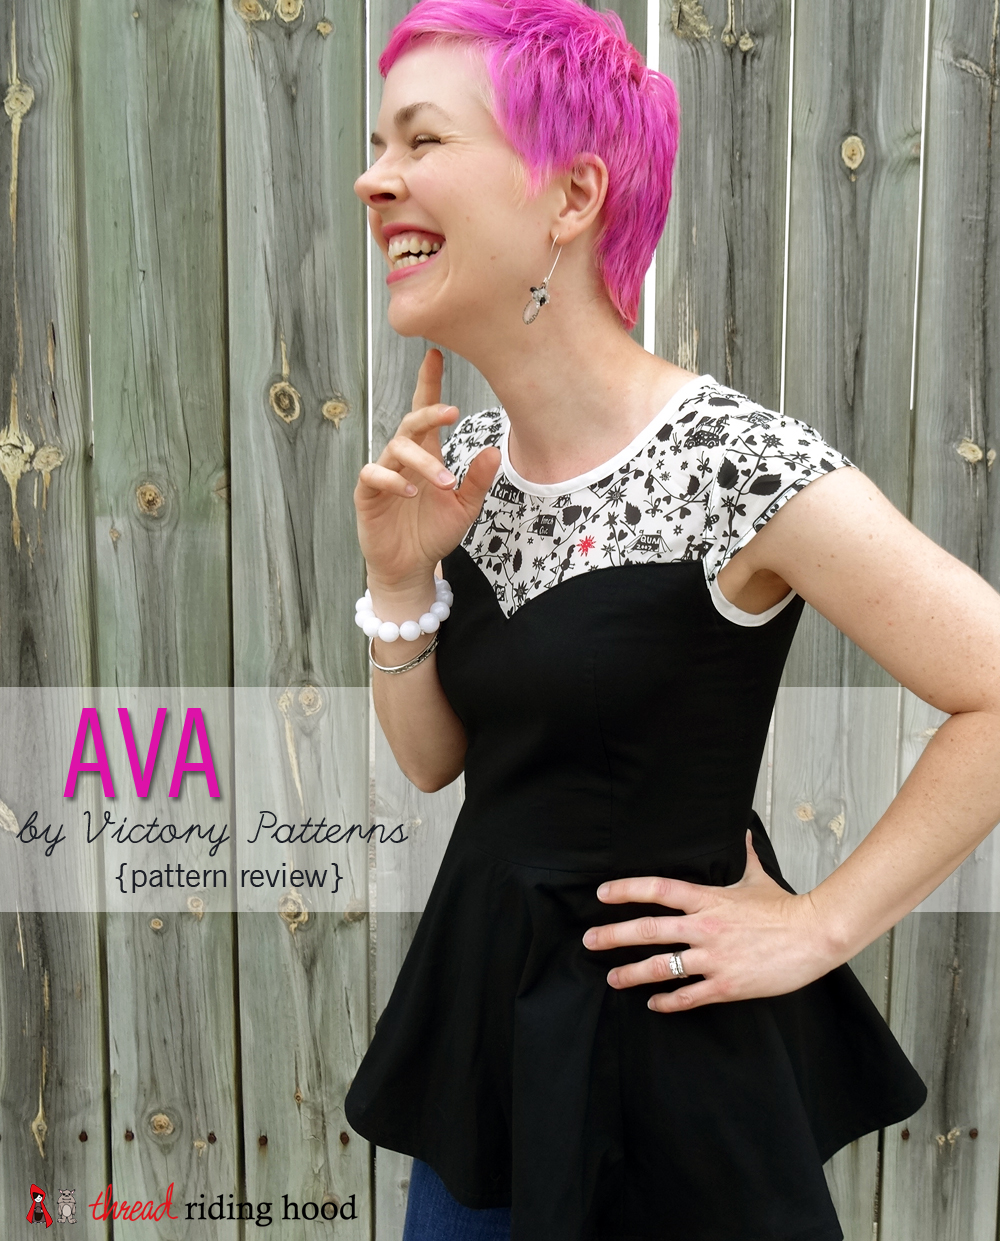 Ava by Victory Patterns {pattern review, discount + giveaway!}